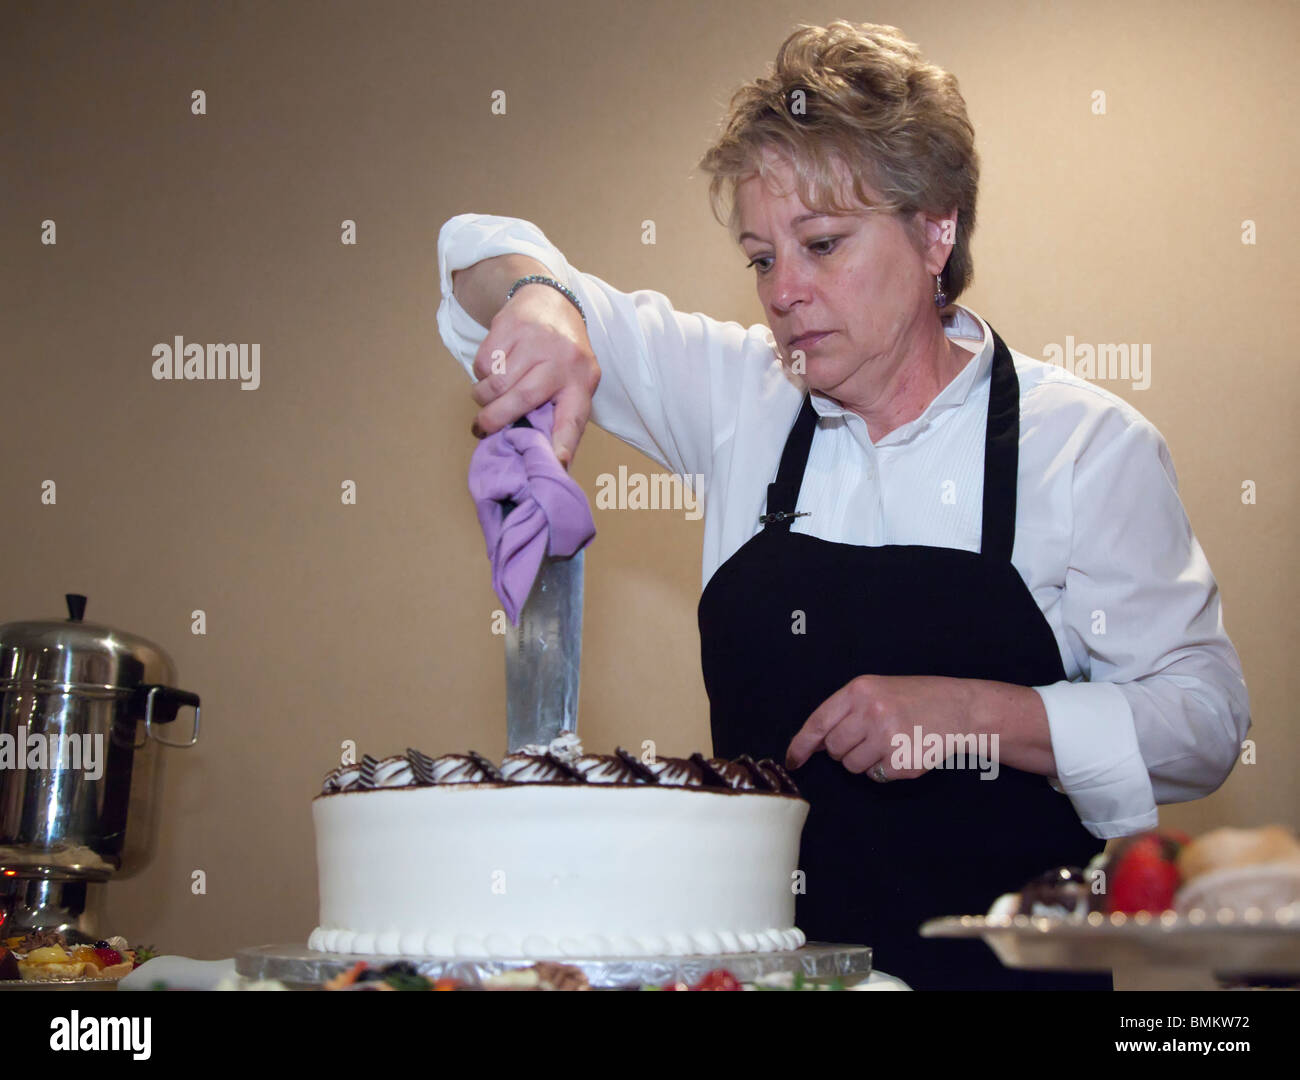 Detroit, Michigan - A catering employee cuts the cake at a wedding. - Stock Image